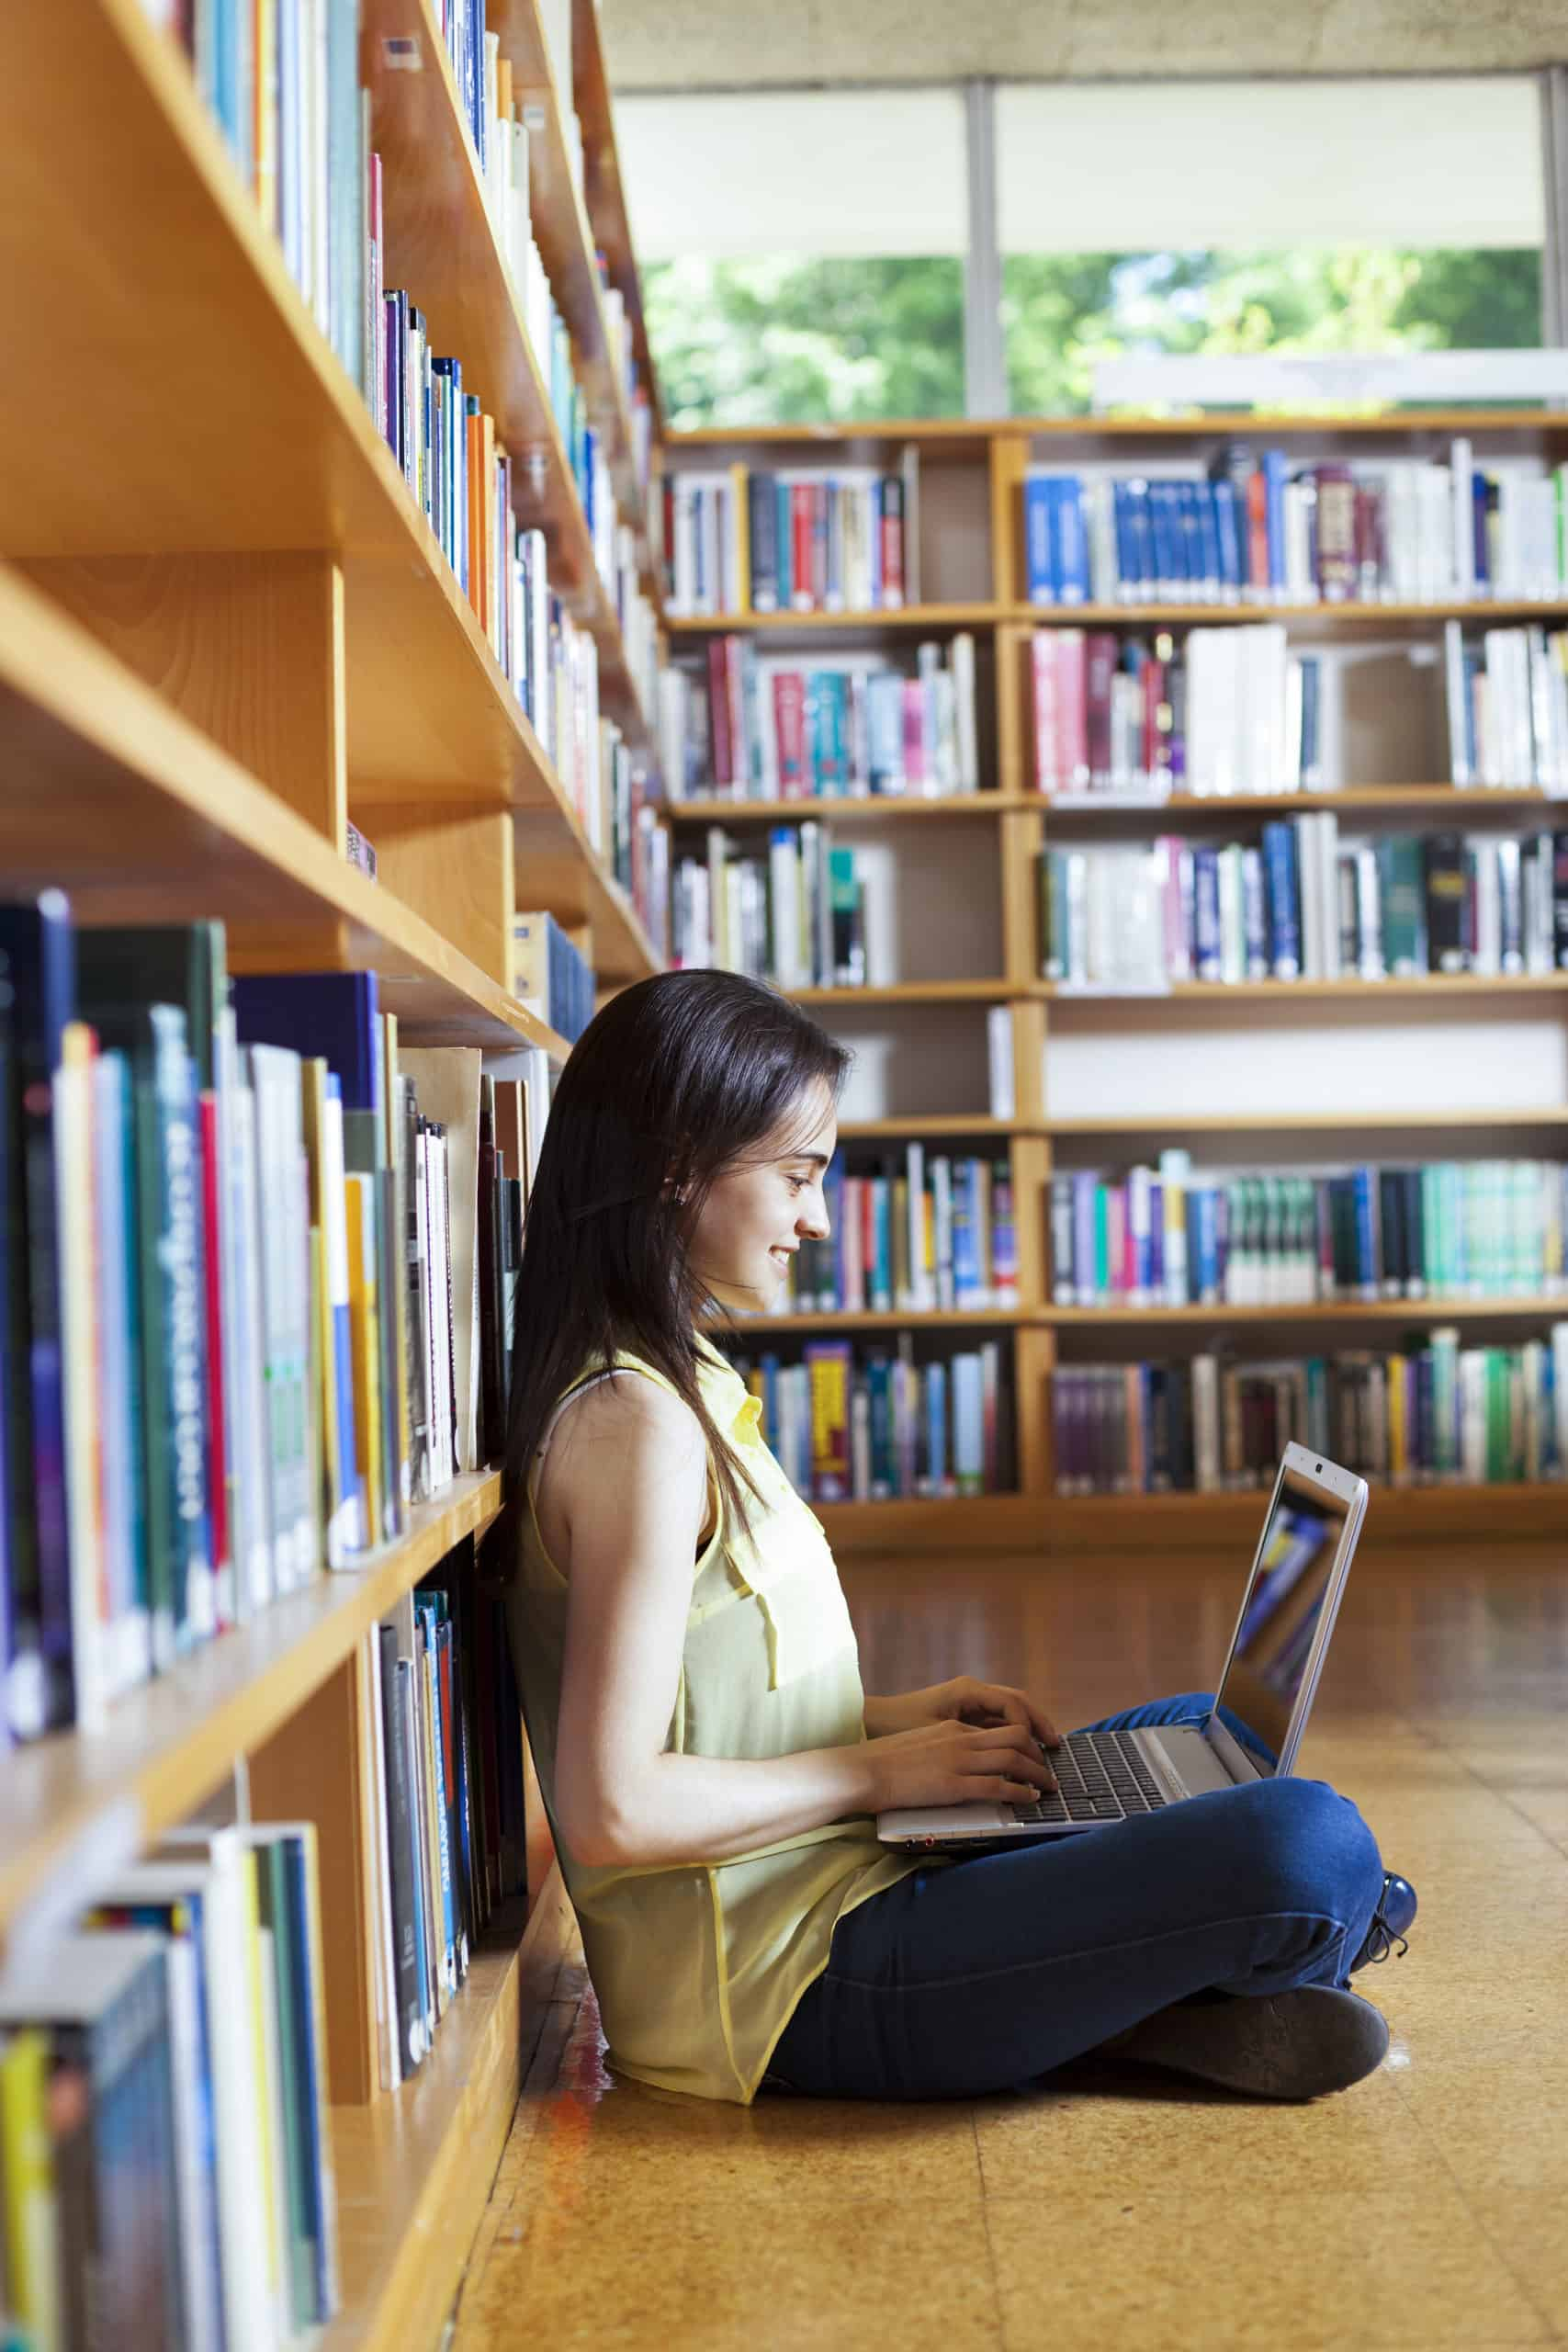 Labster - Community college student learns in library